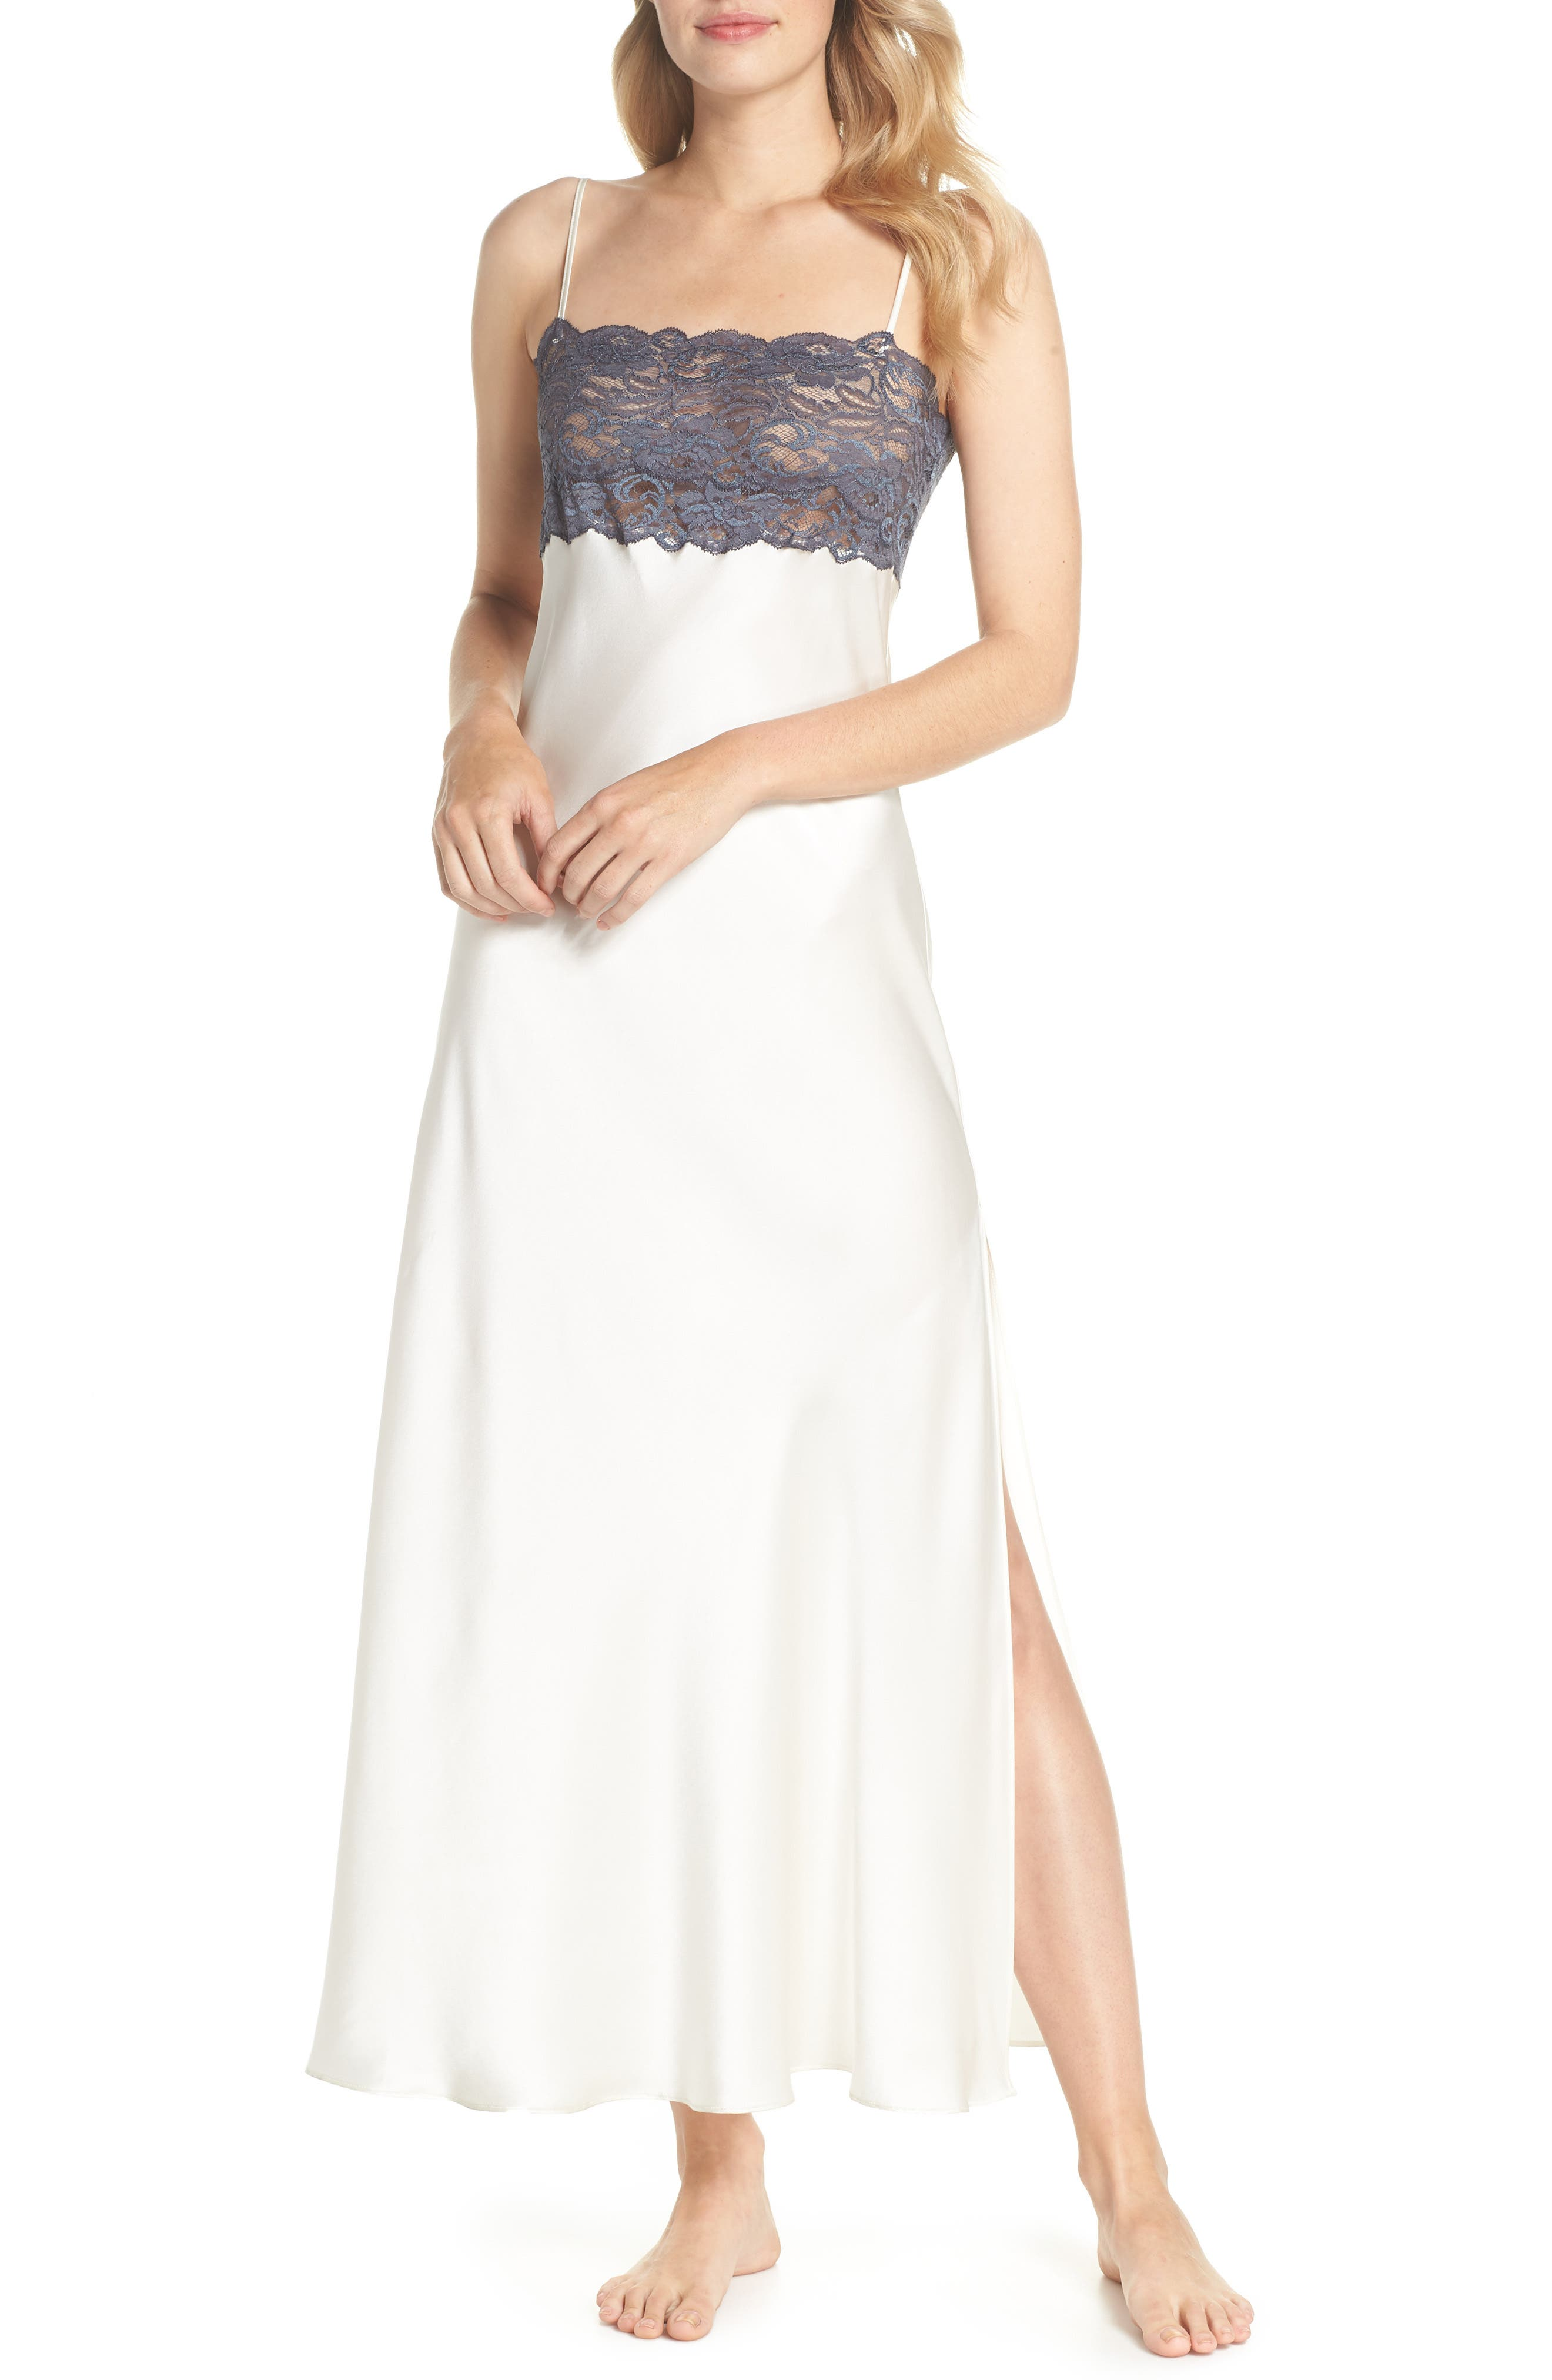 Christine Stretch Lace Silk Nightgown,                             Main thumbnail 1, color,                             900